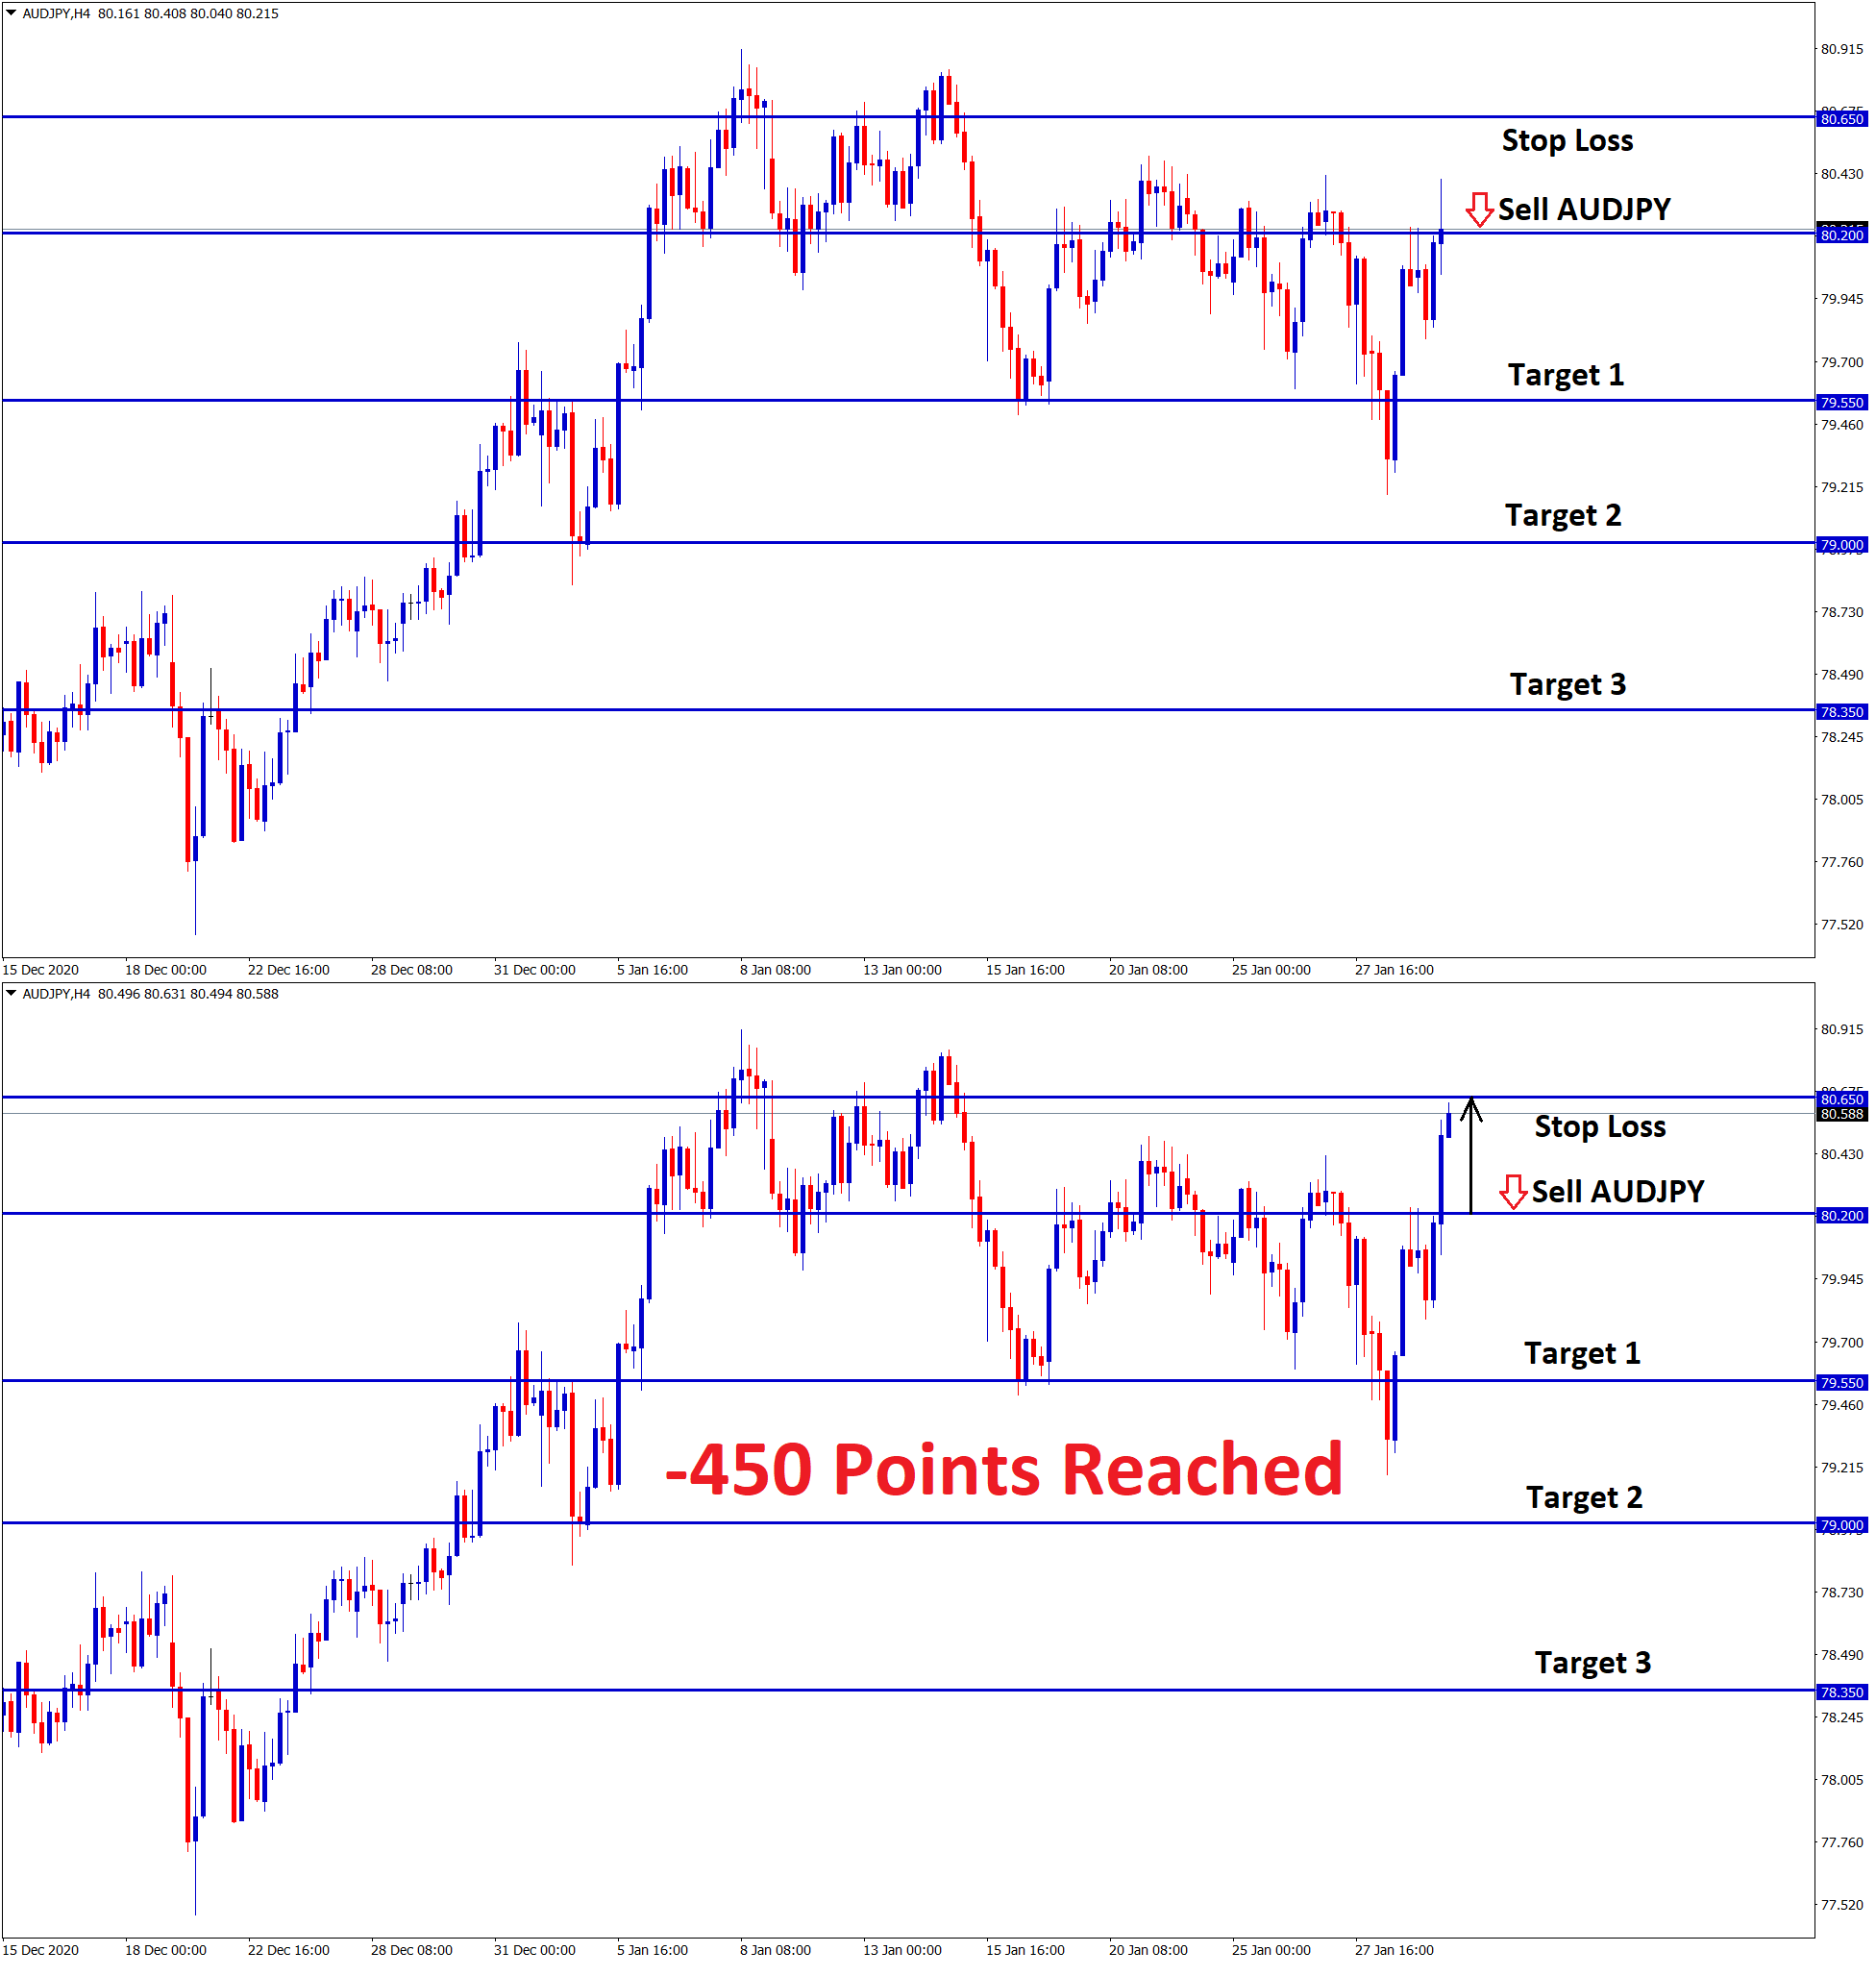 AUDJPY SL 450 points reached